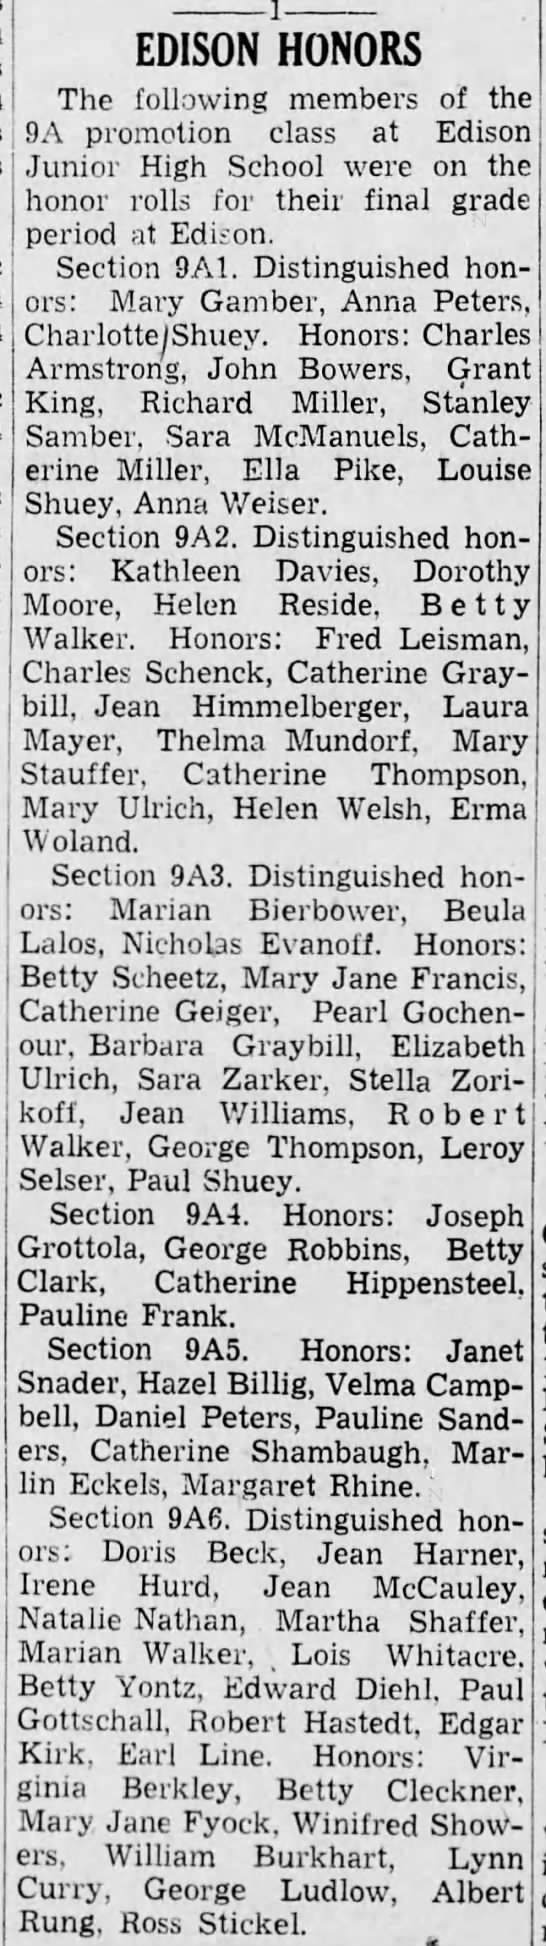 1938 High Honors for Lynn Curry Jr 9A5 -